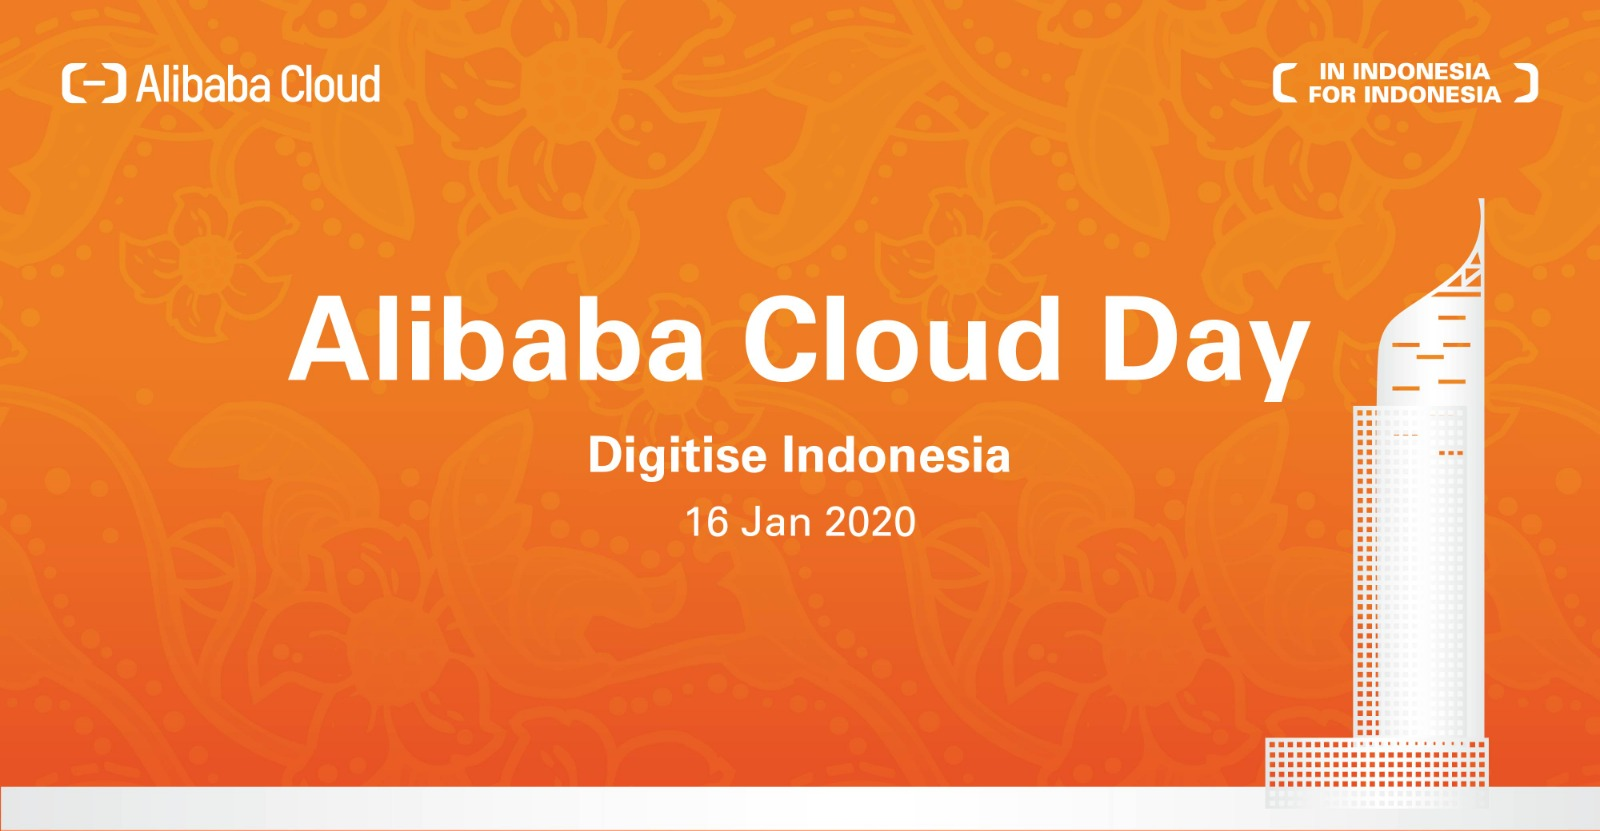 Alibaba Cloud Day